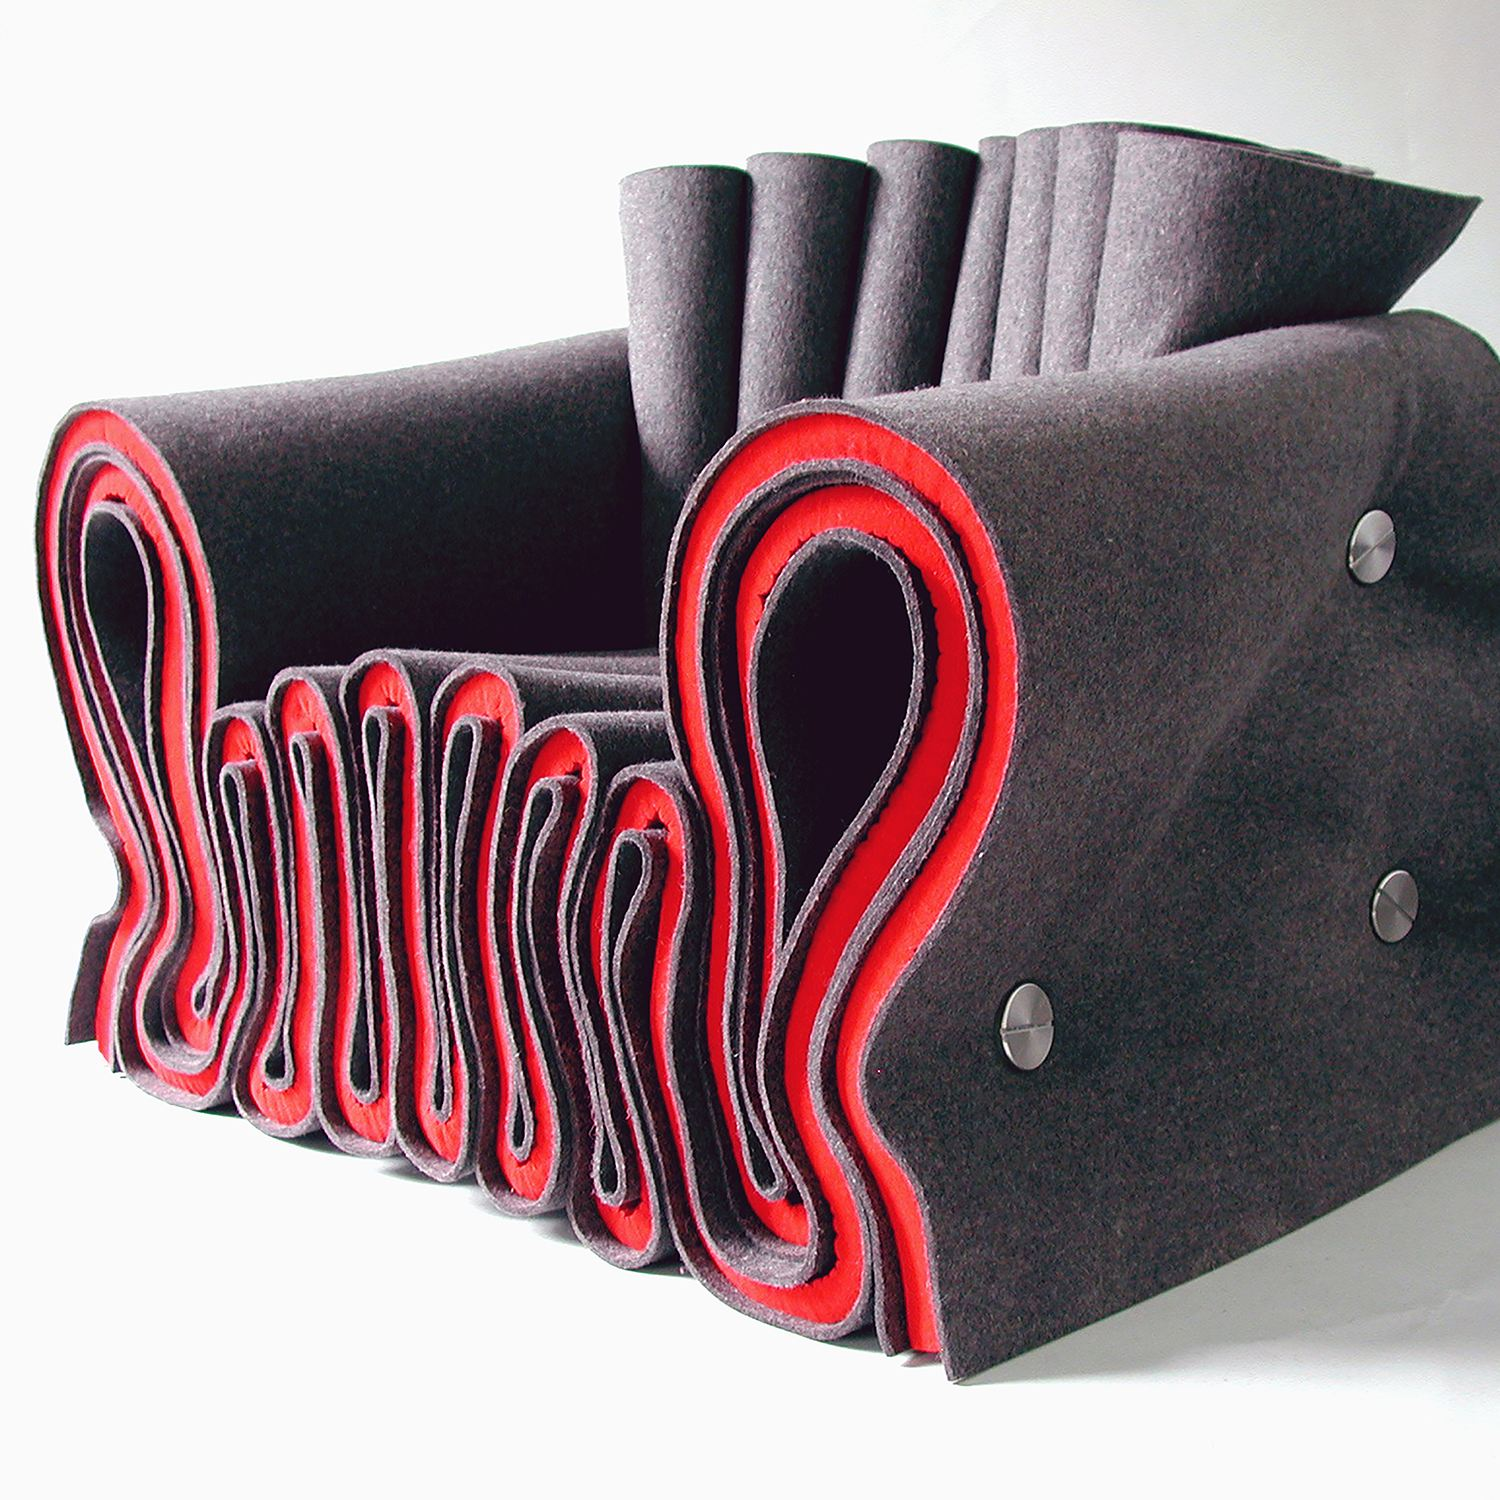 Joseph Felt Chair Seating by Lothar Windels